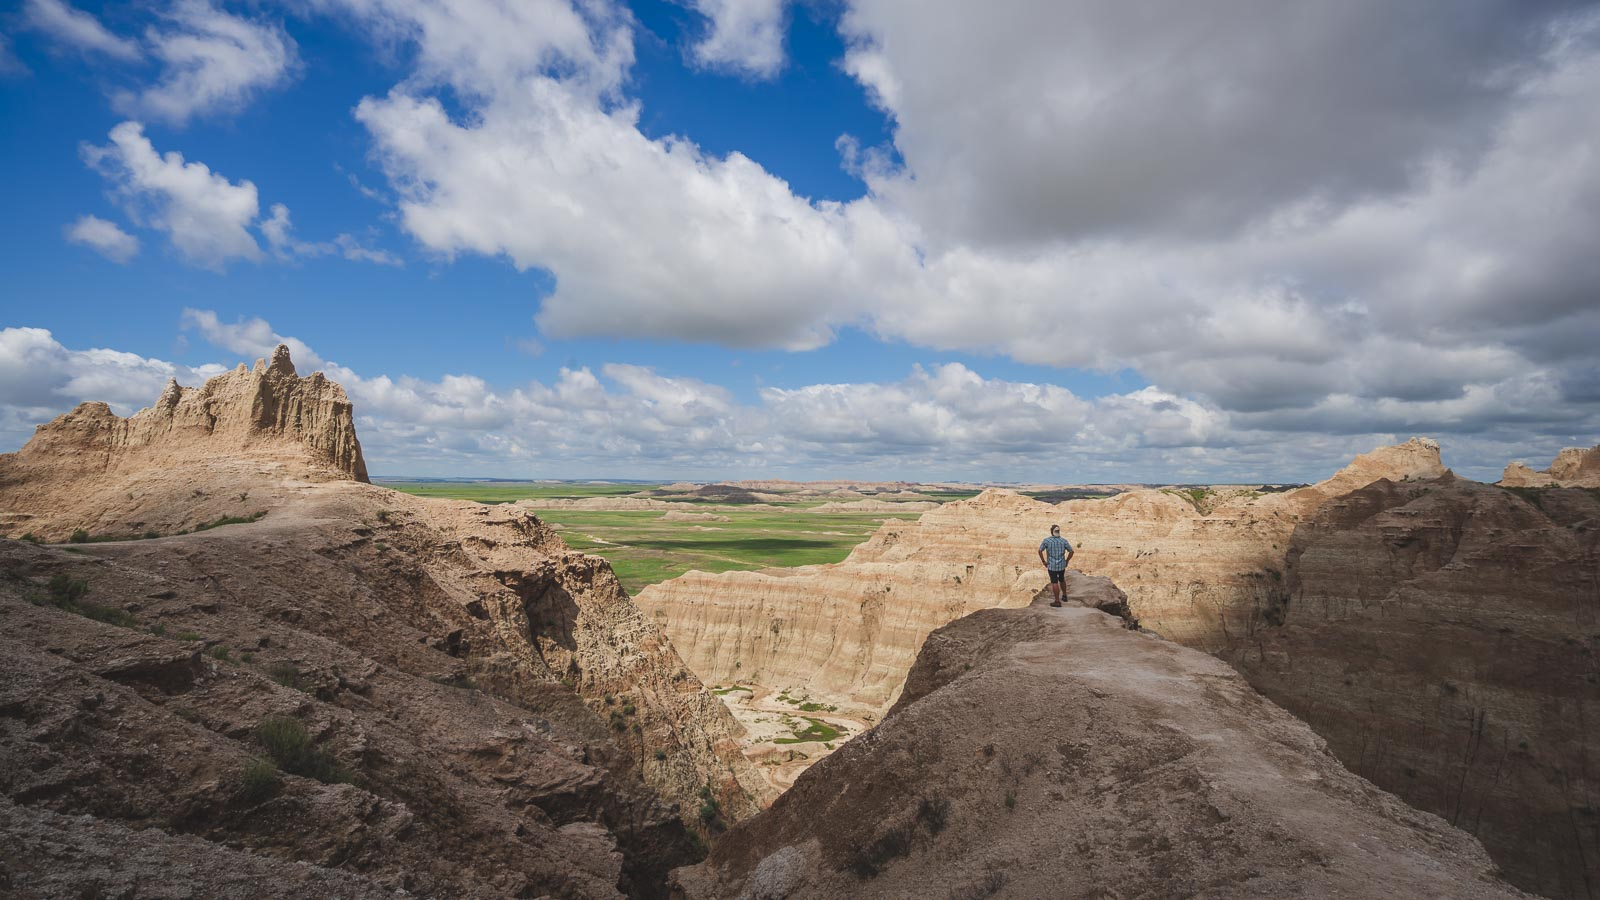 things to do in badlands national park south dakota